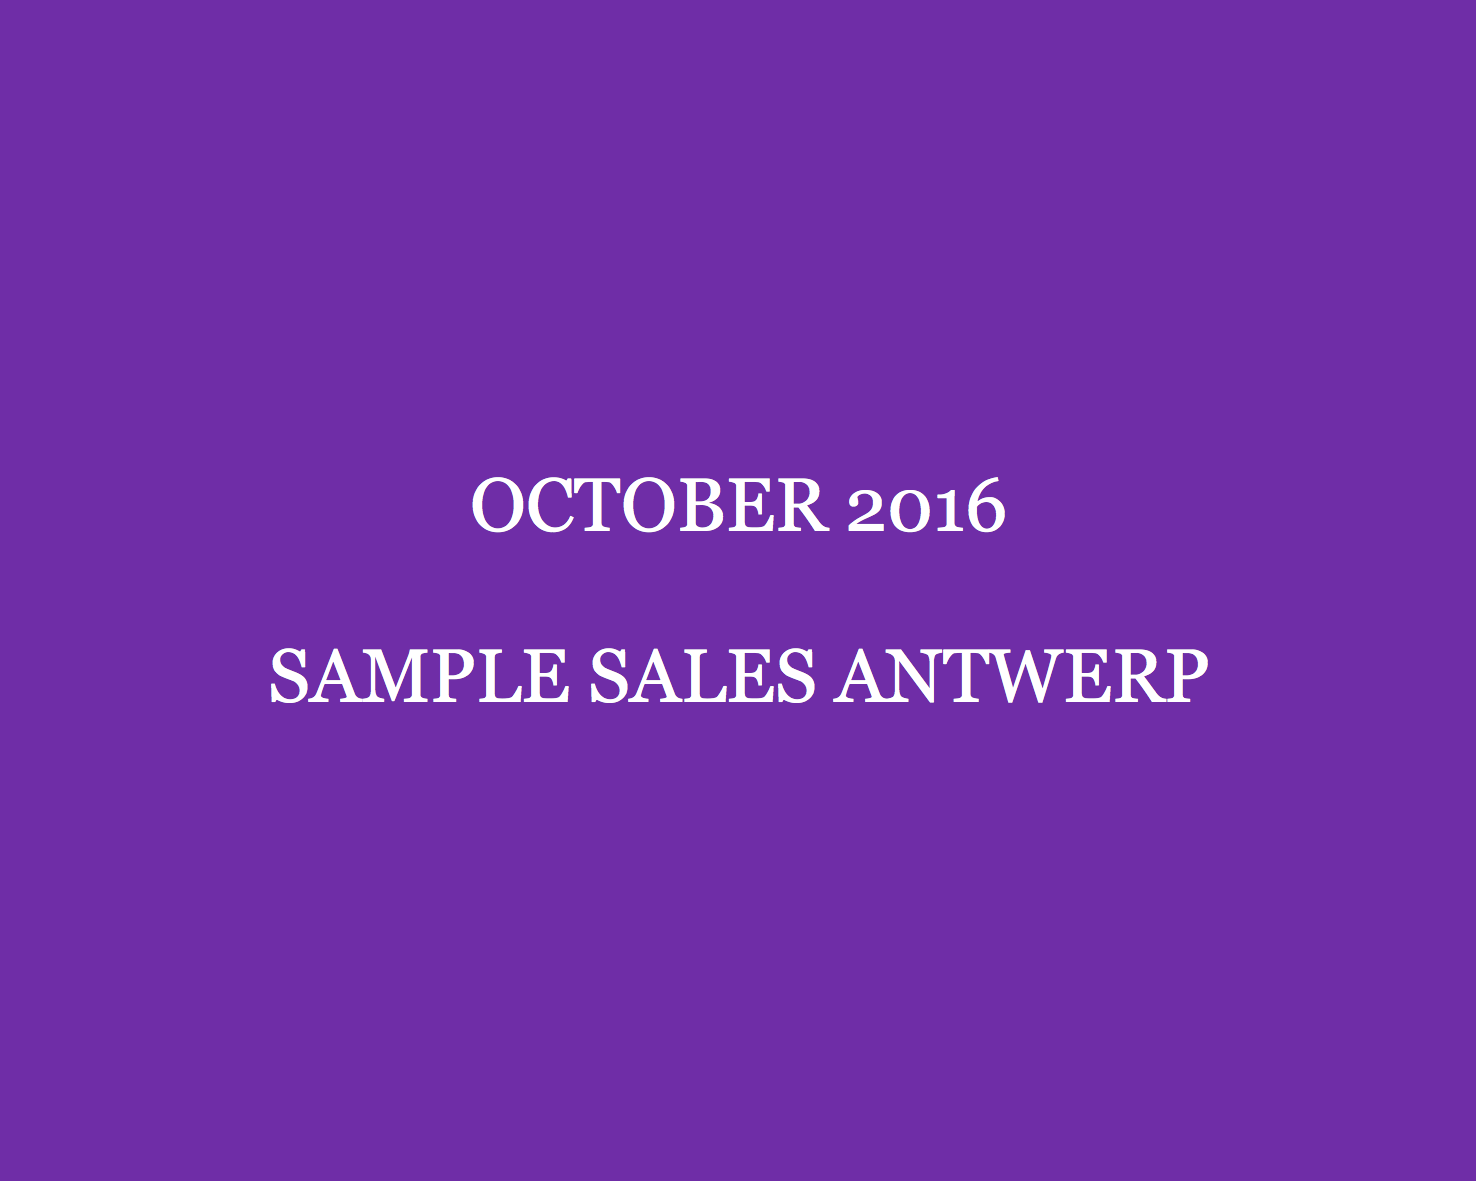 october-2016-sample-sales-antwerp-style-barista-antwerp-sample-sales-antwerp-stocksales-contemporary-fashion-days-antwerpen-stockverkopen